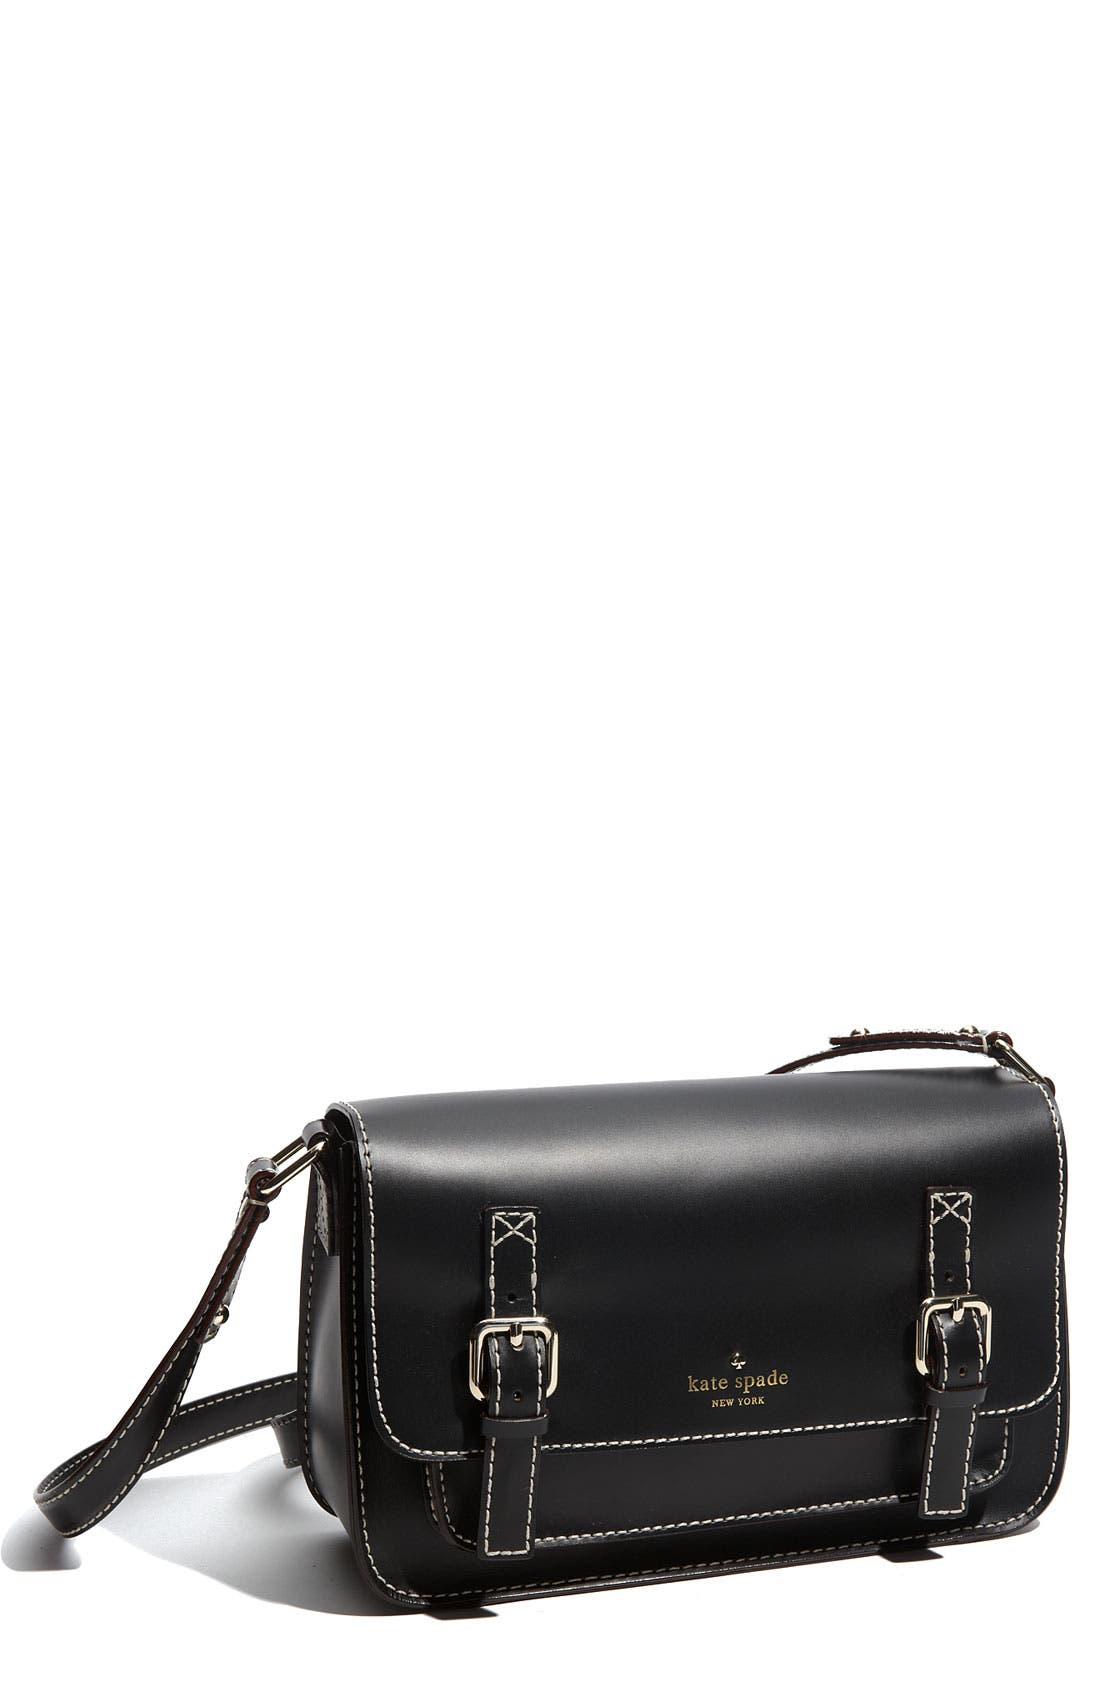 Alternate Image 1 Selected - kate spade new york 'essex scout' leather flap crossbody bag